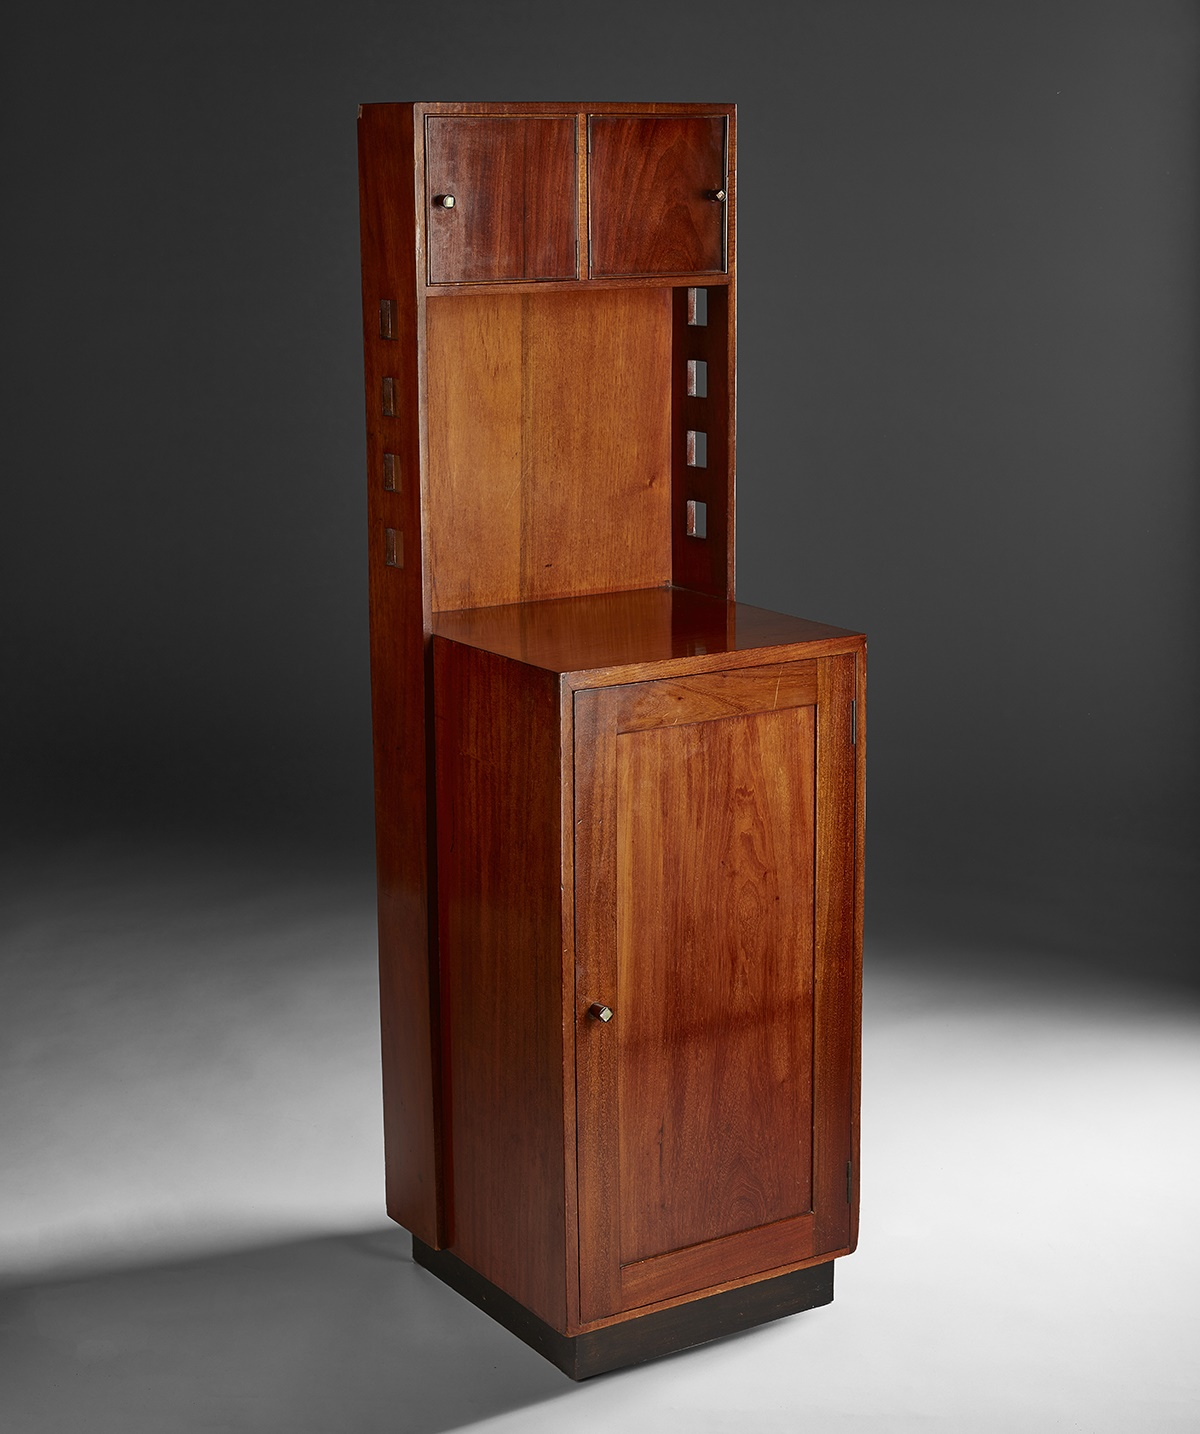 CHARLES RENNIE MACKINTOSH (1868-1928) INLAID MAHOGANY BEDSIDE CABINET, 1916